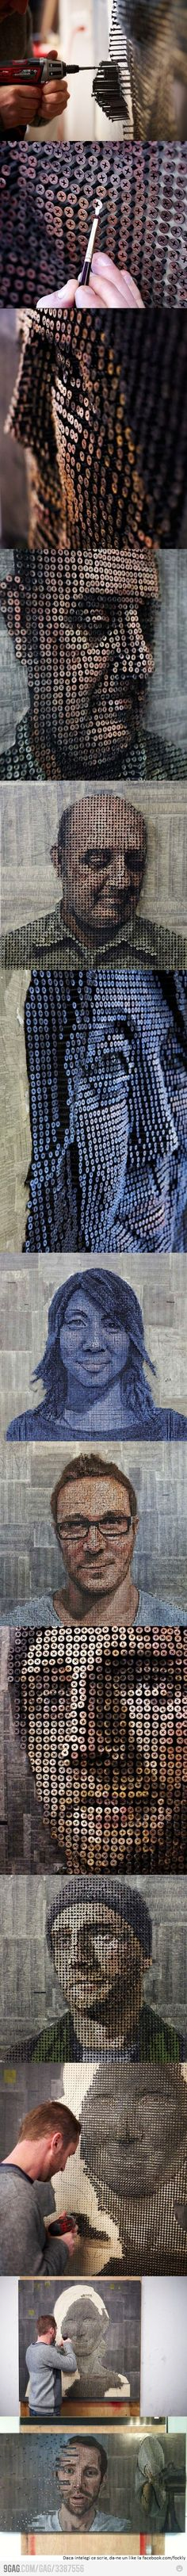 amazing 3D portraits